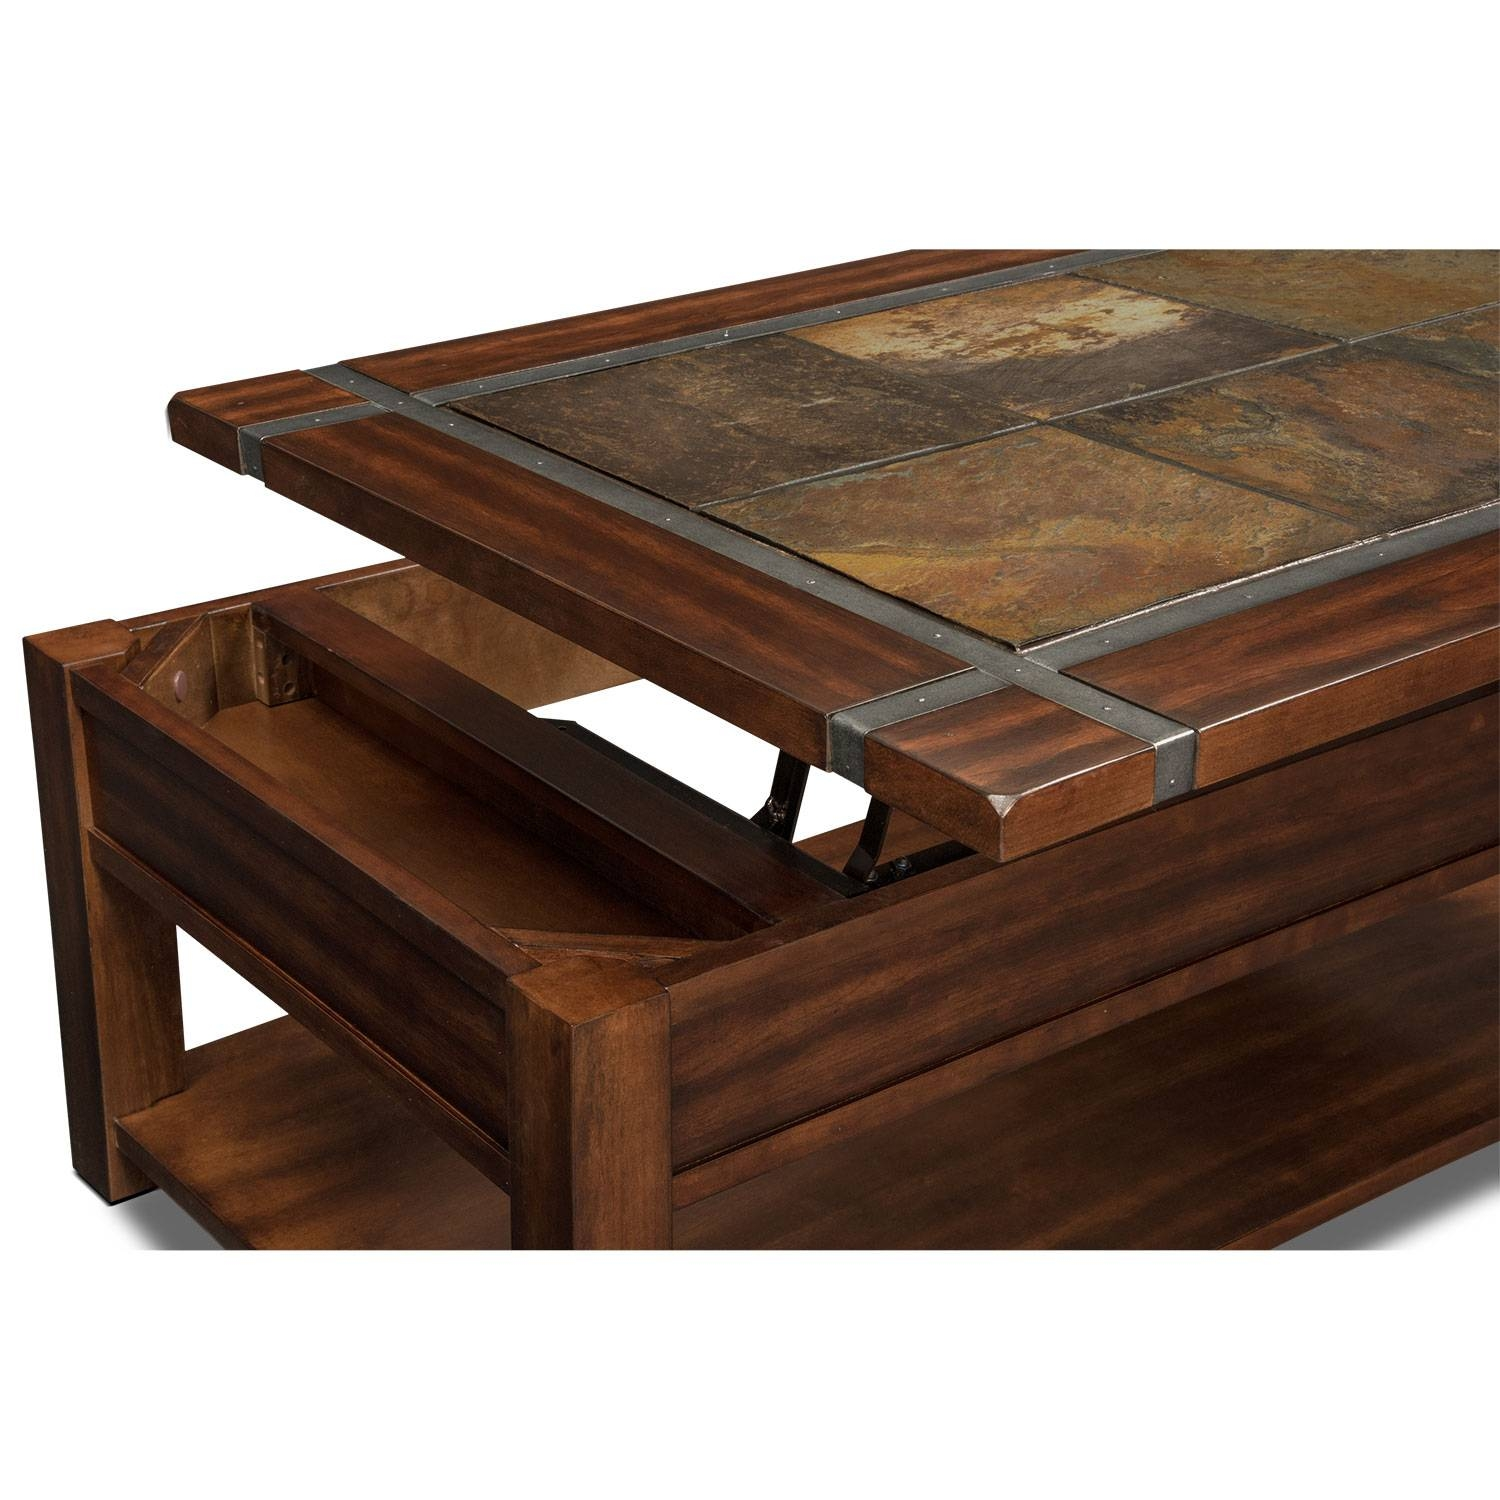 Slate Ridge Lift-Top Cocktail Table - Cherry | Value City Furniture for Flip Top Coffee Tables (Image 23 of 30)